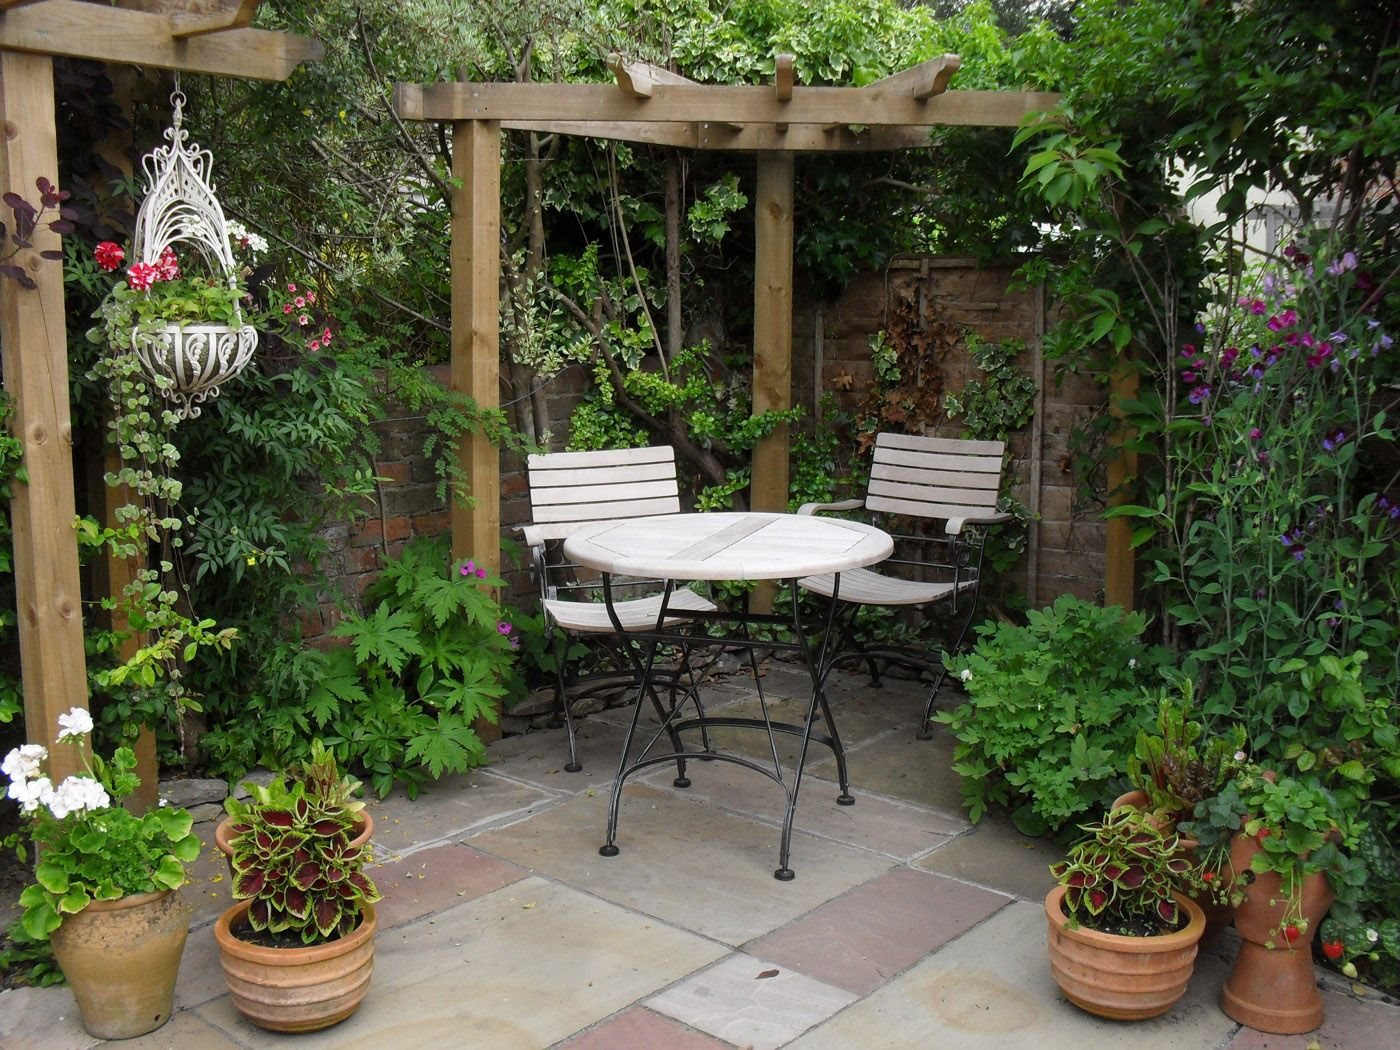 Courtyard Garden Design For Modern Home : Small Courtyard Gardens Design  Corner Pergola Outdoor Dining Set This Might Do Part 90